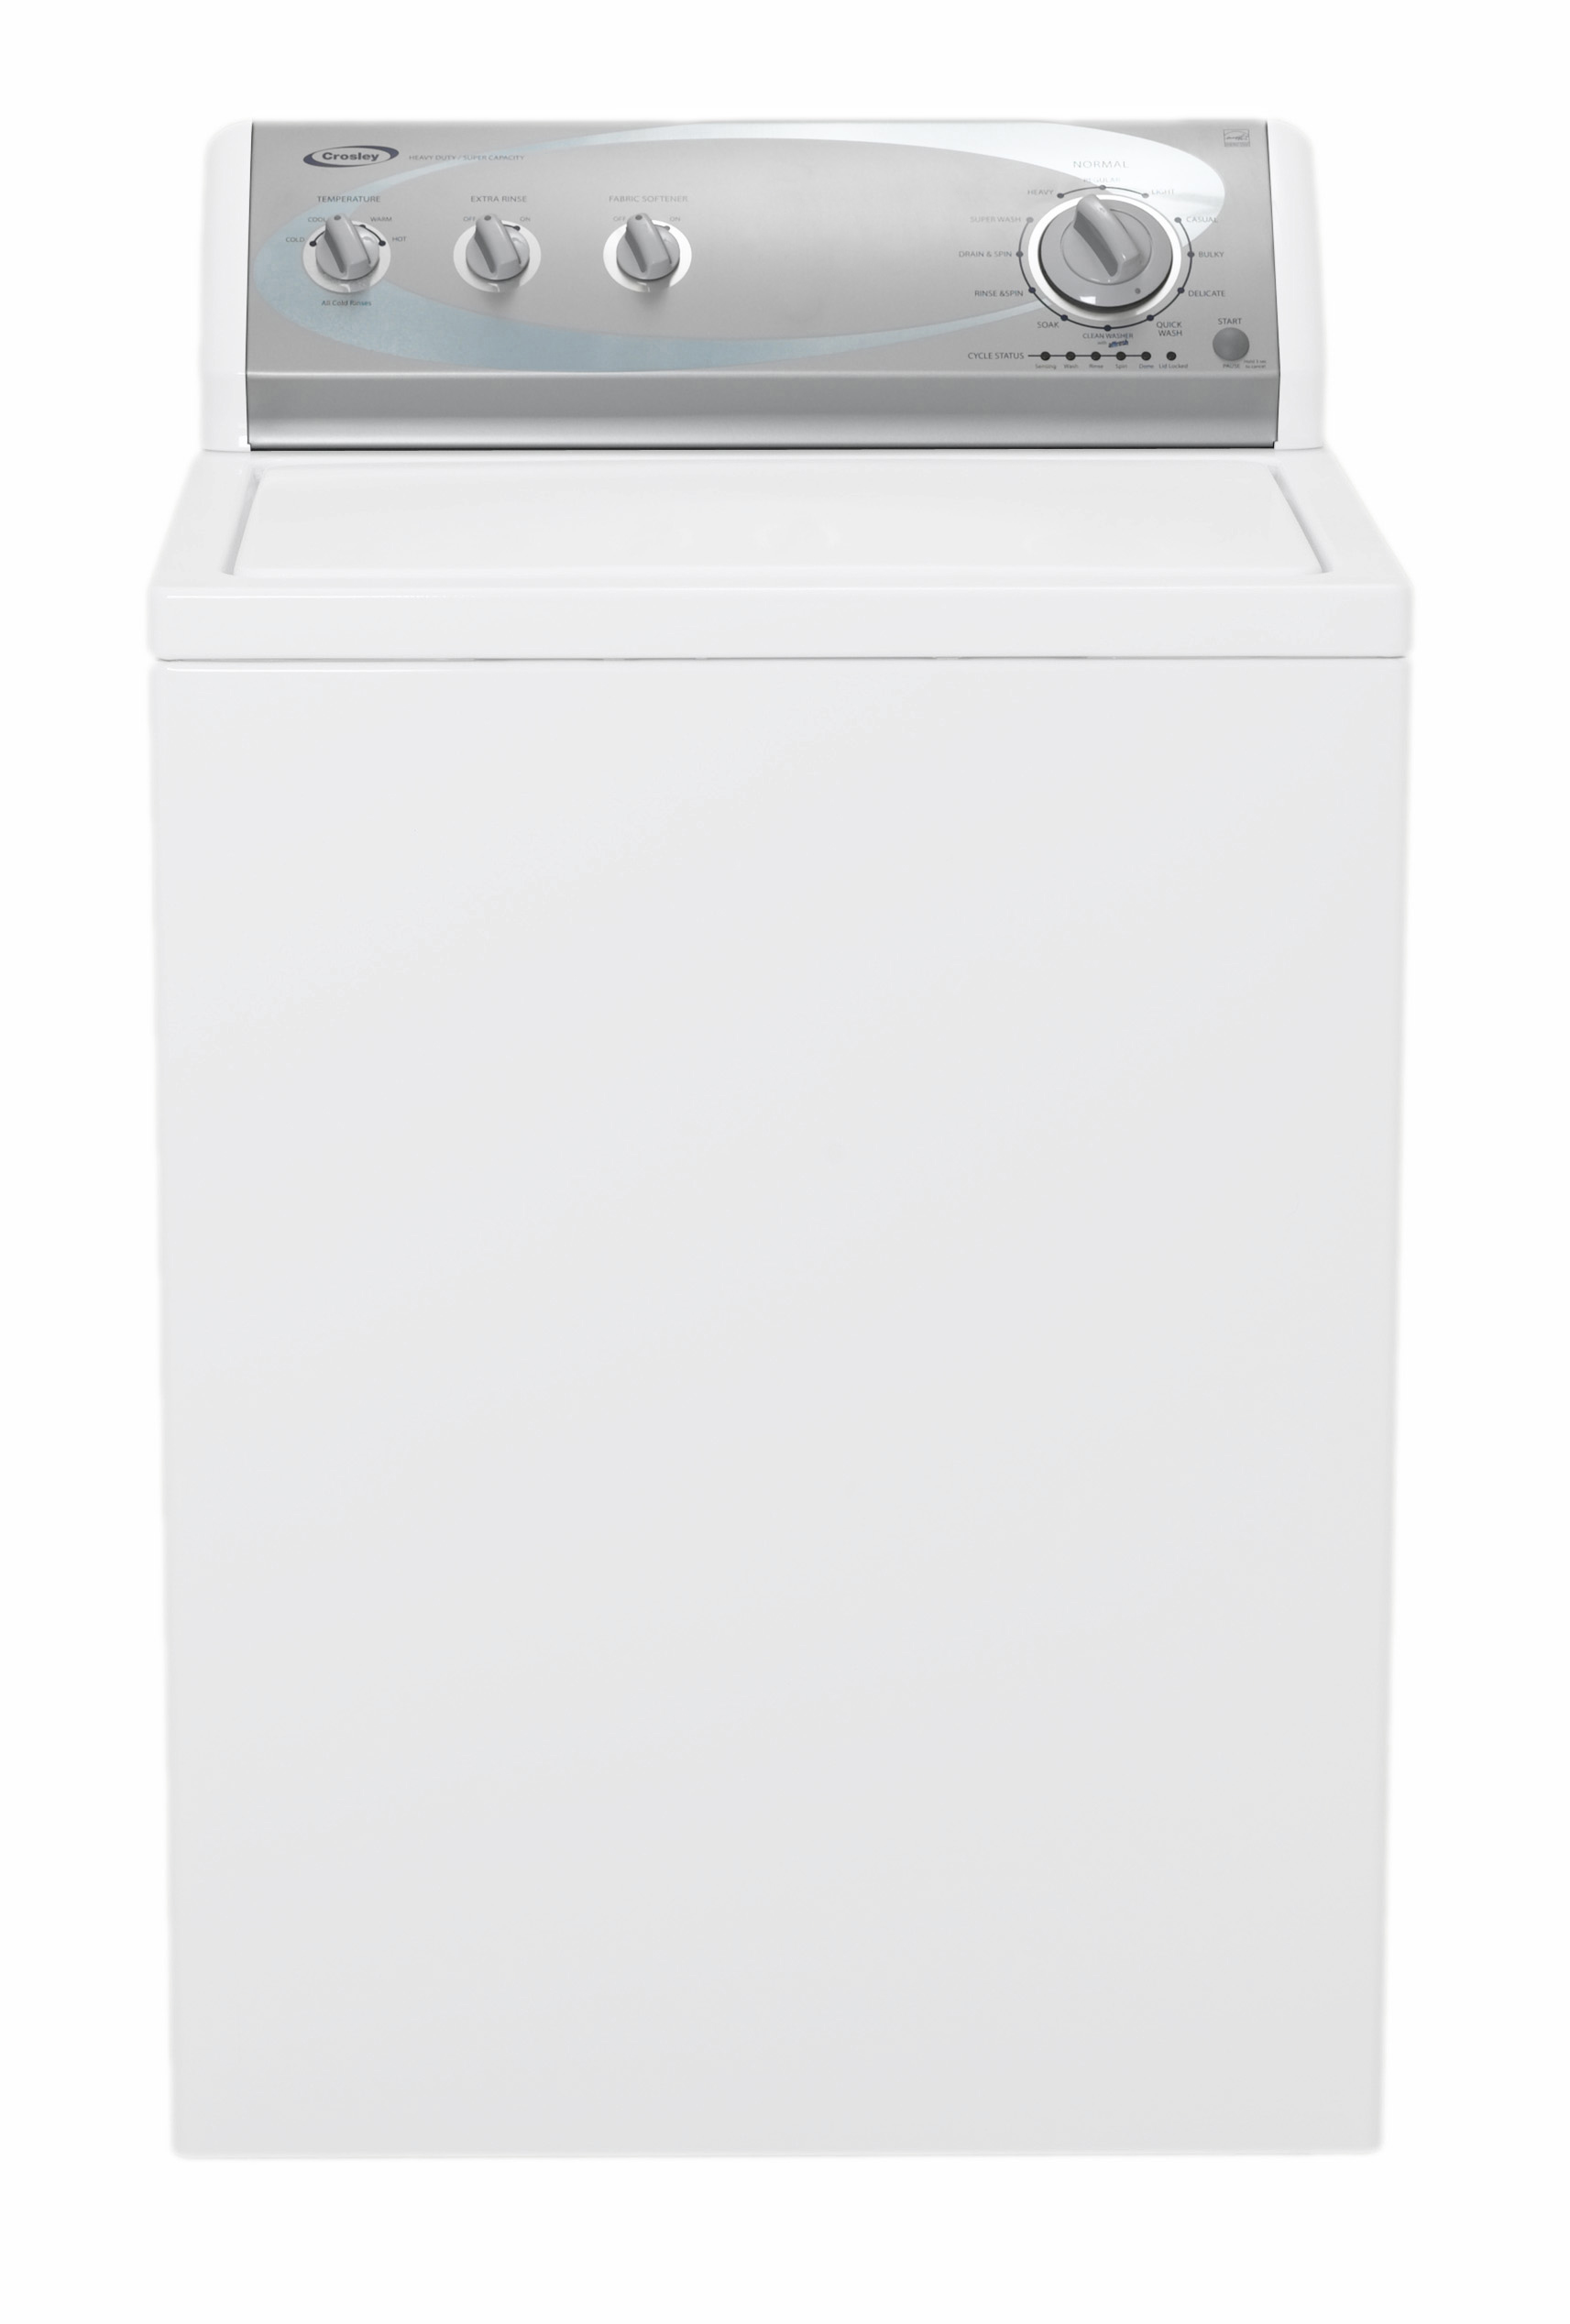 Crosley Super Capacity Washer 3.6 cu. ft. Model CAW9444DW